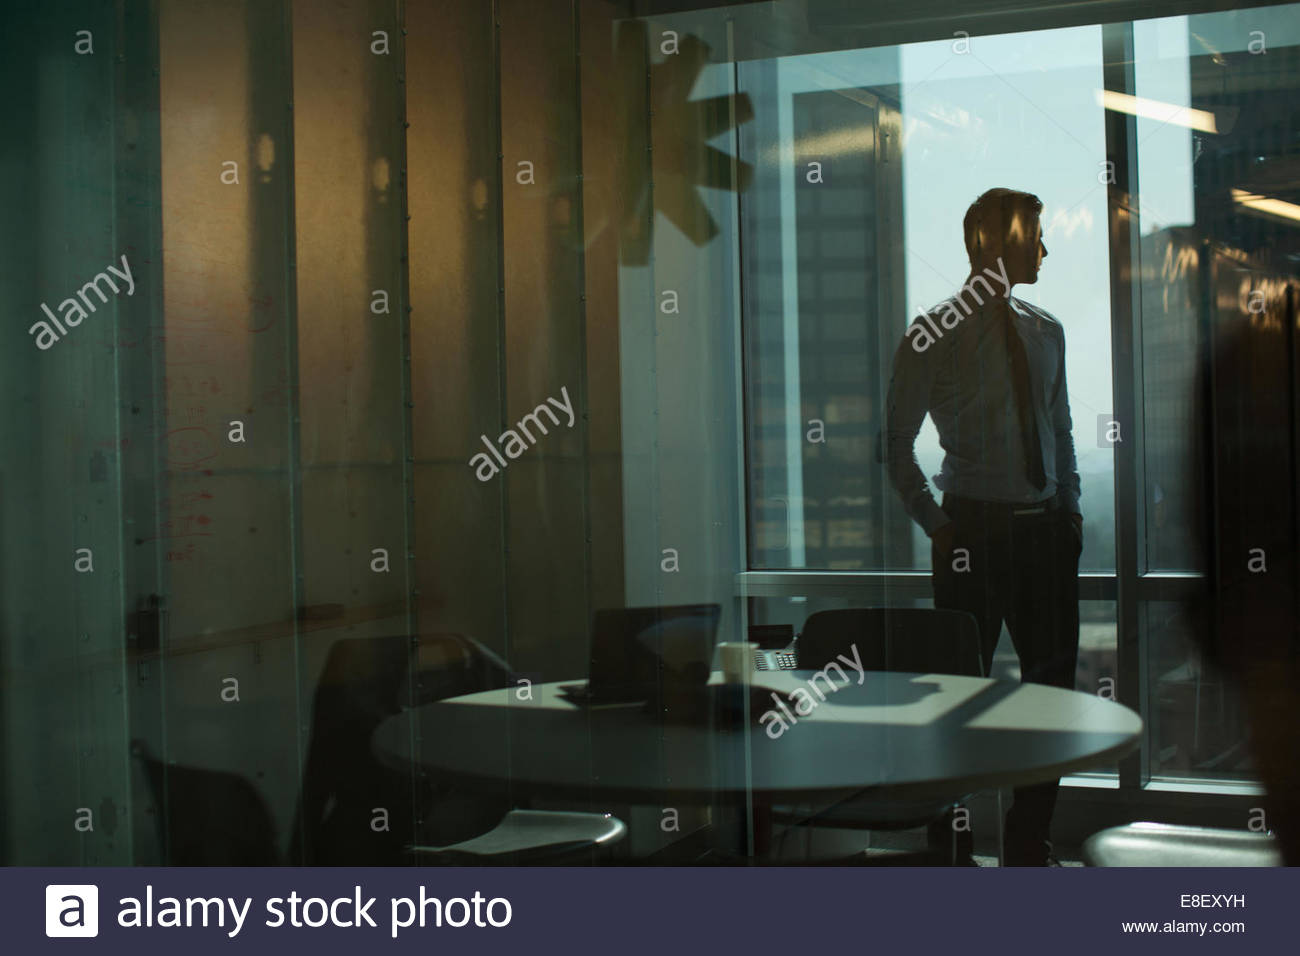 Businessman standing in office Photo Stock